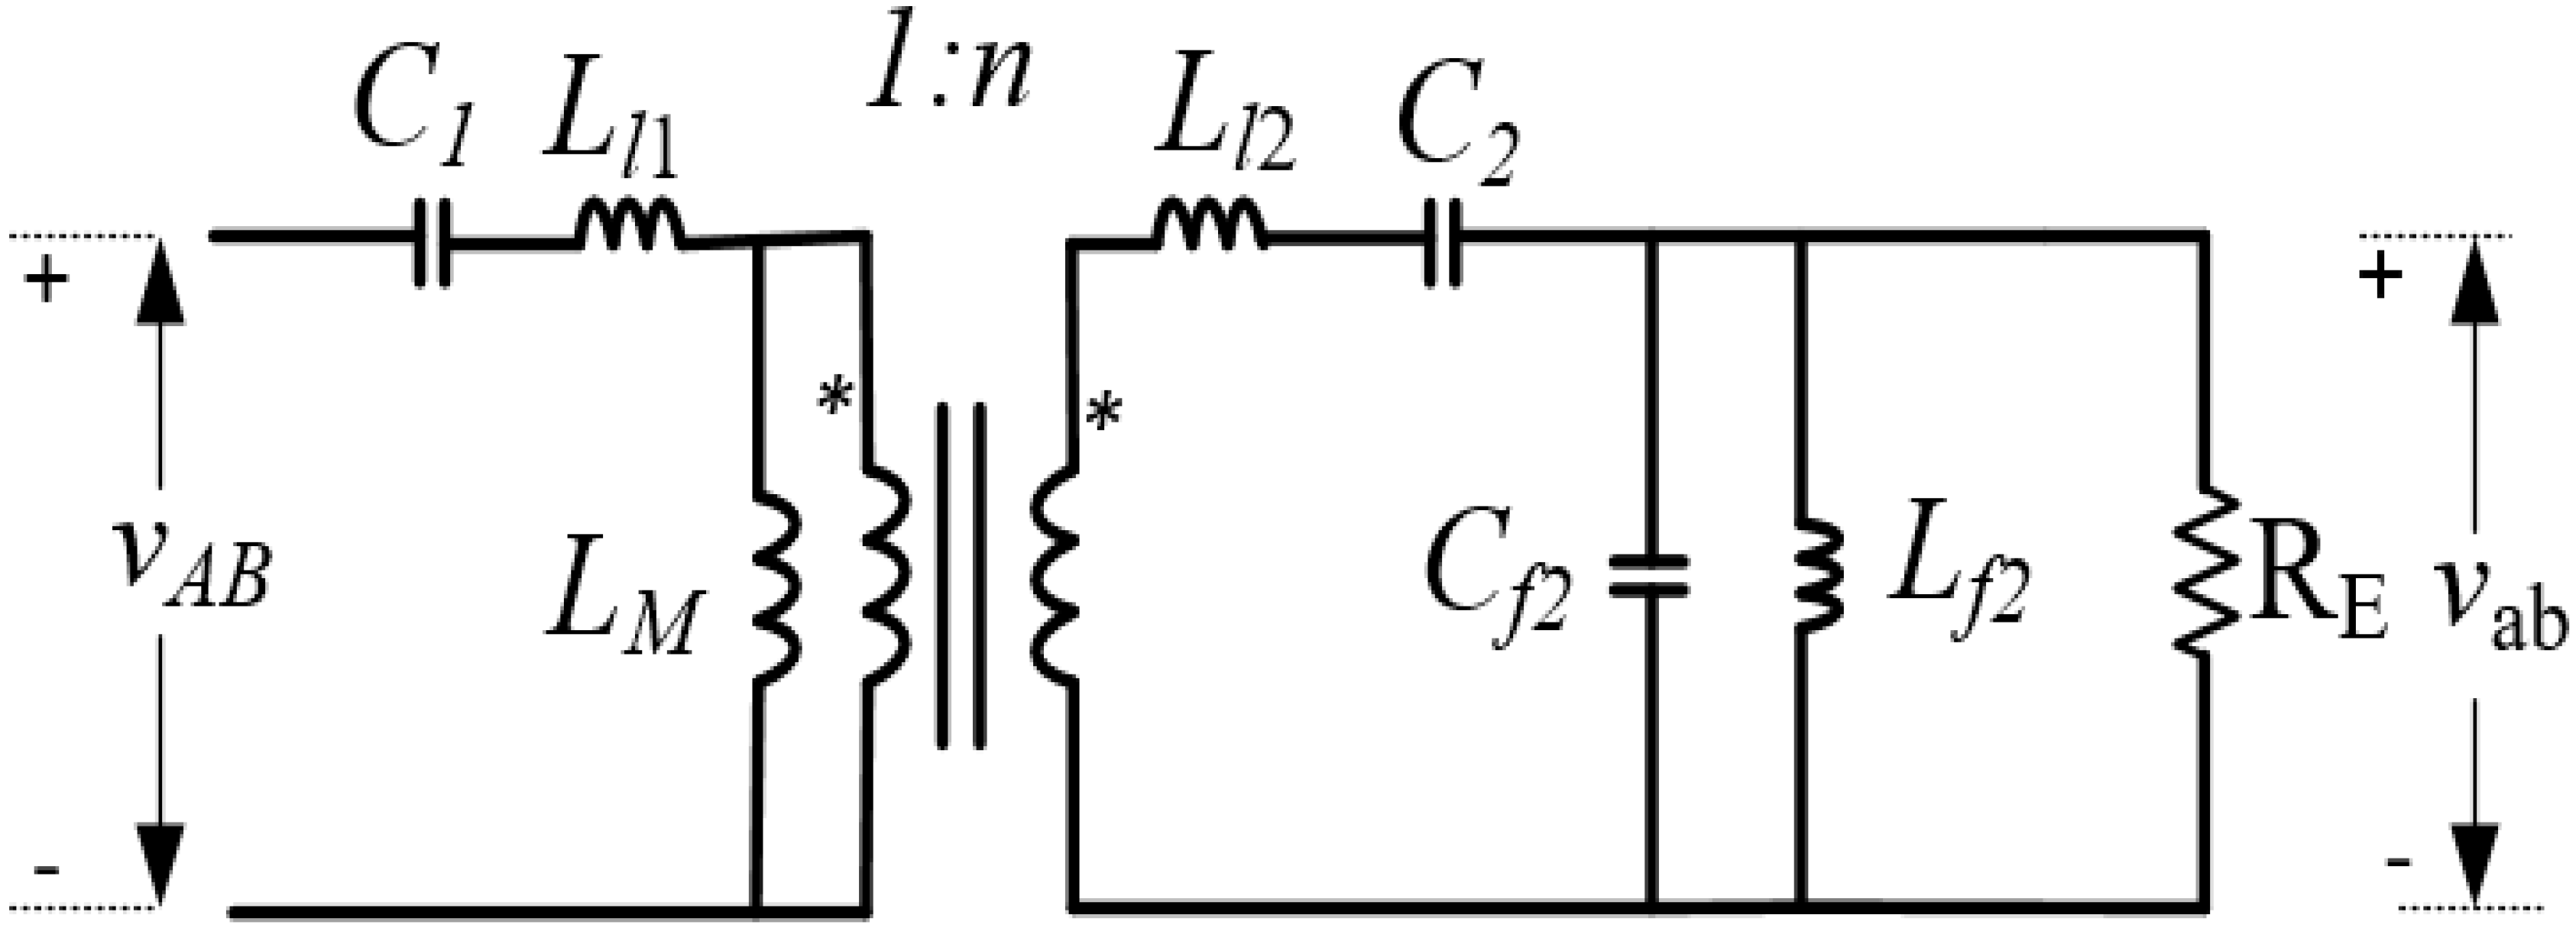 Energies Free Full Text Analysis Of Lc Lc2 Compensated Inductive Inductor Equivalent Circuit A Real No